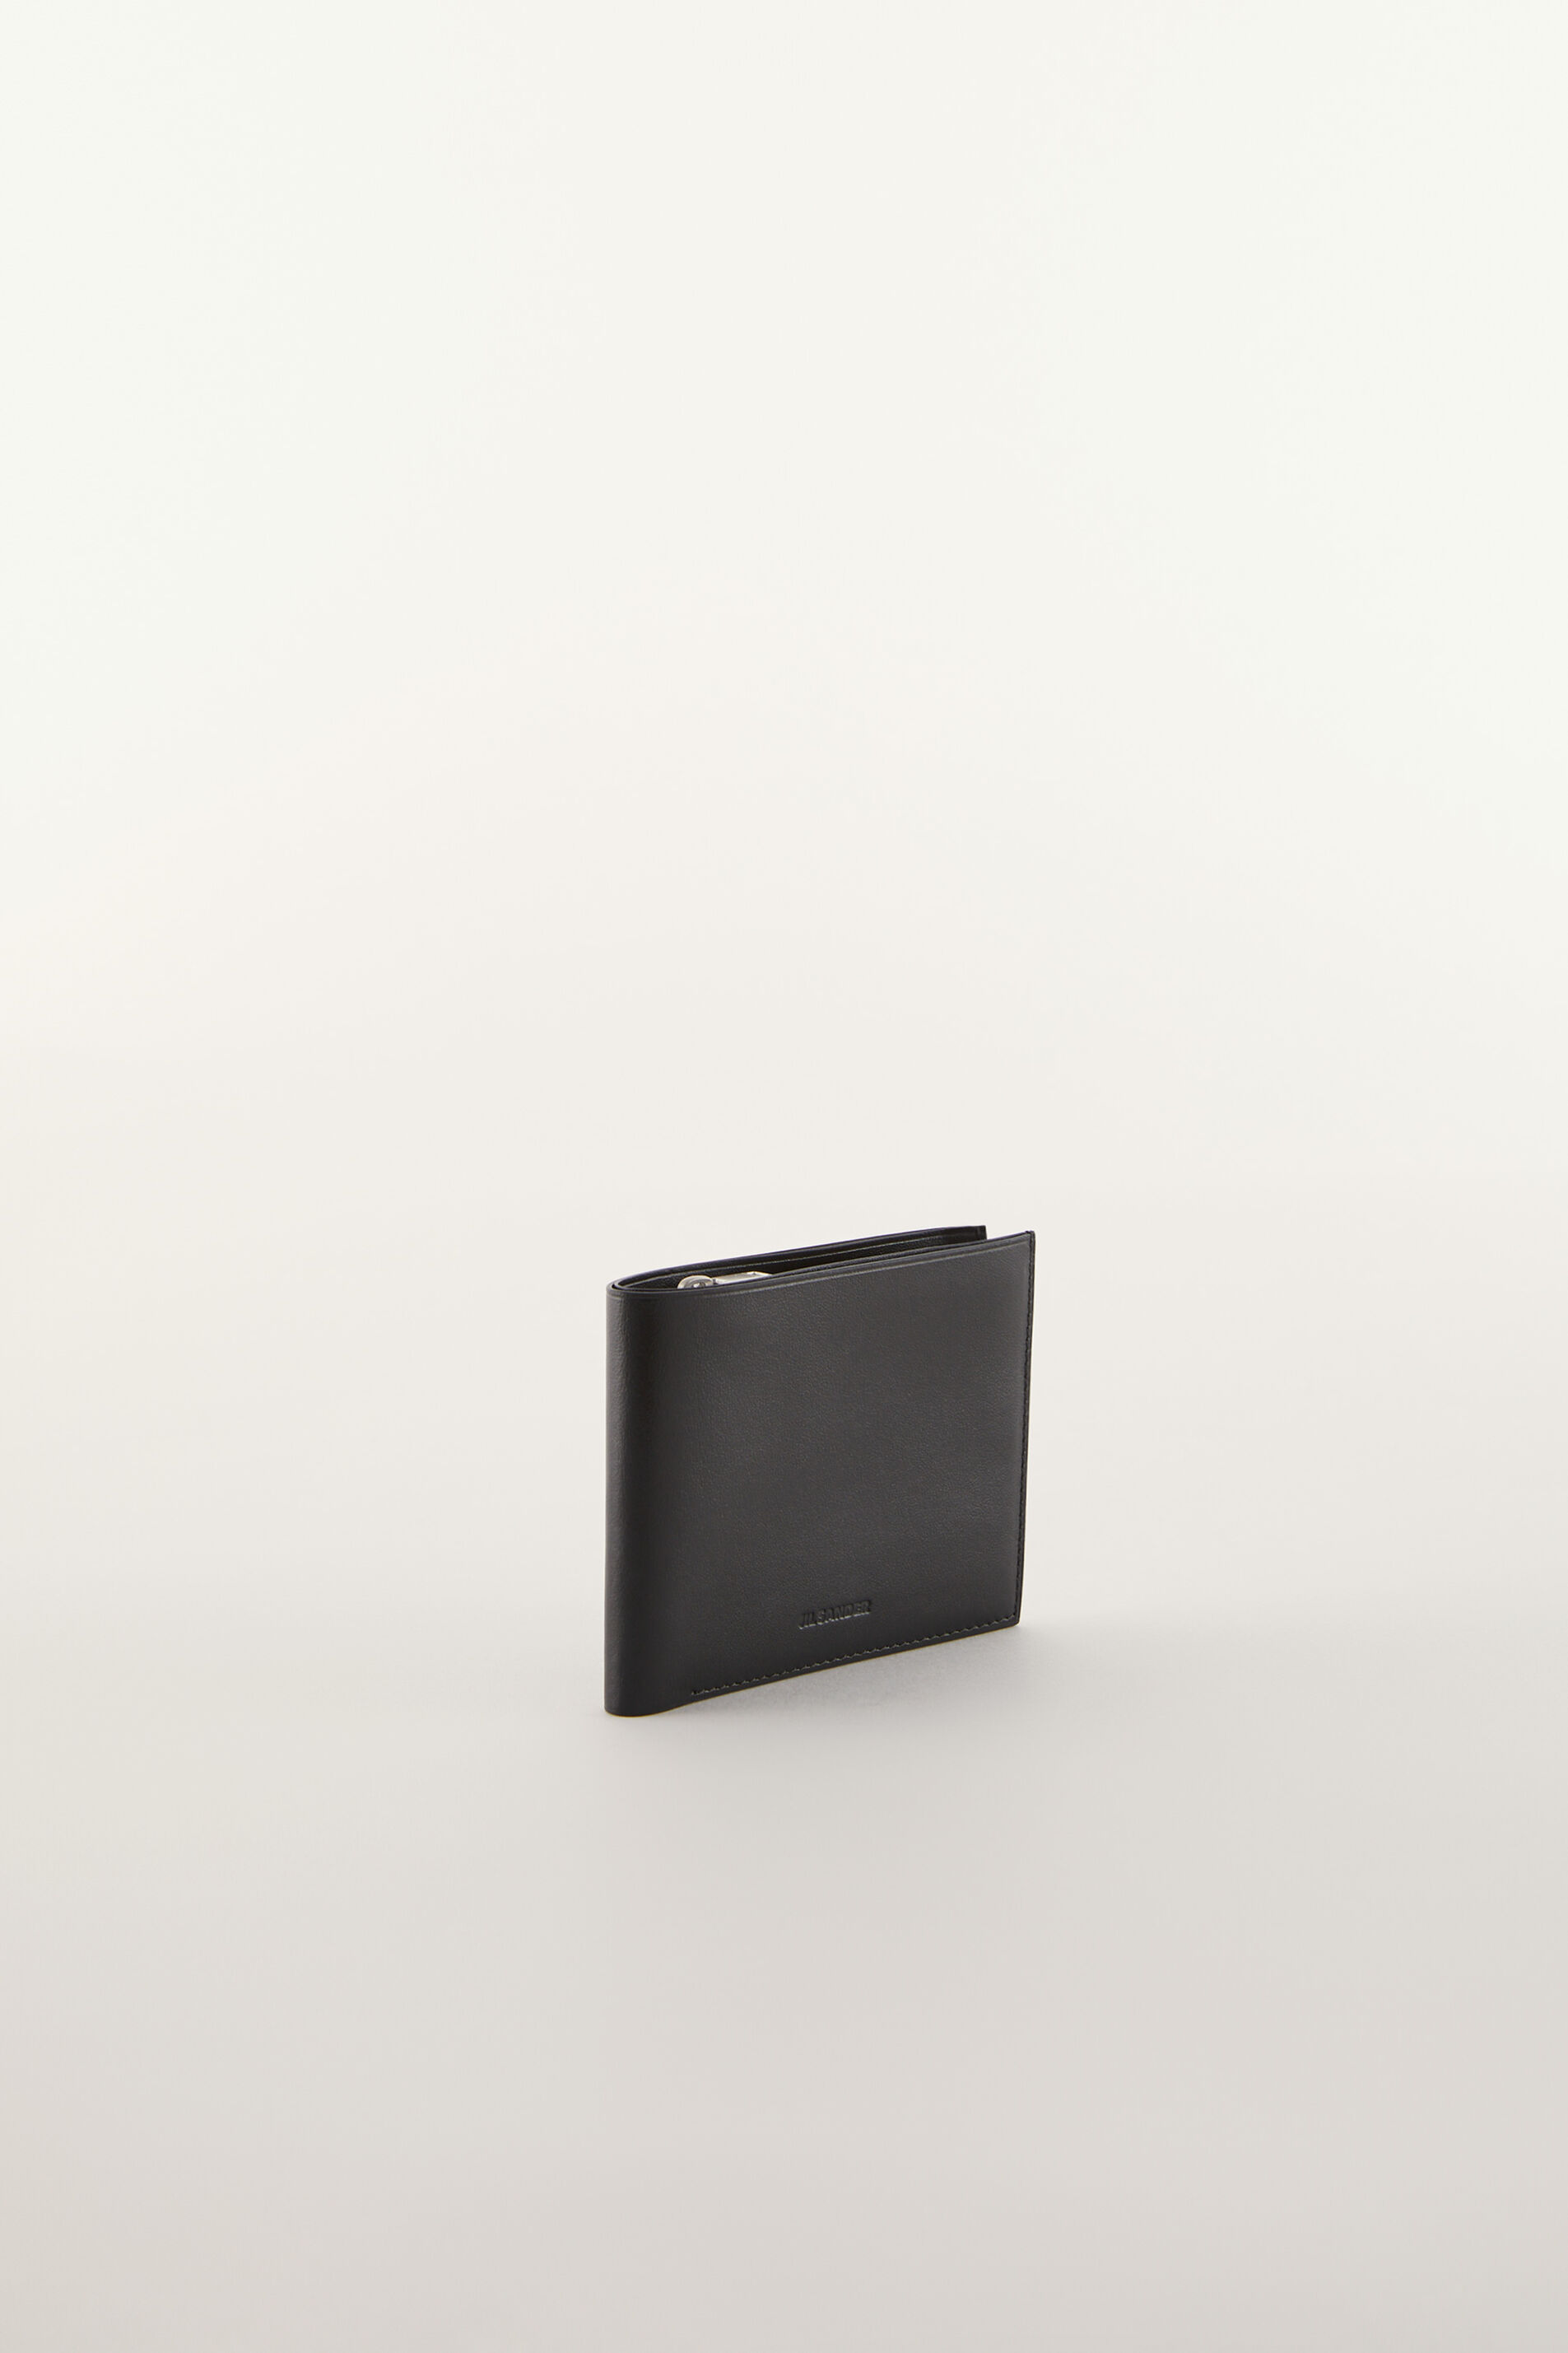 Zip Pocket Wallet, black, large